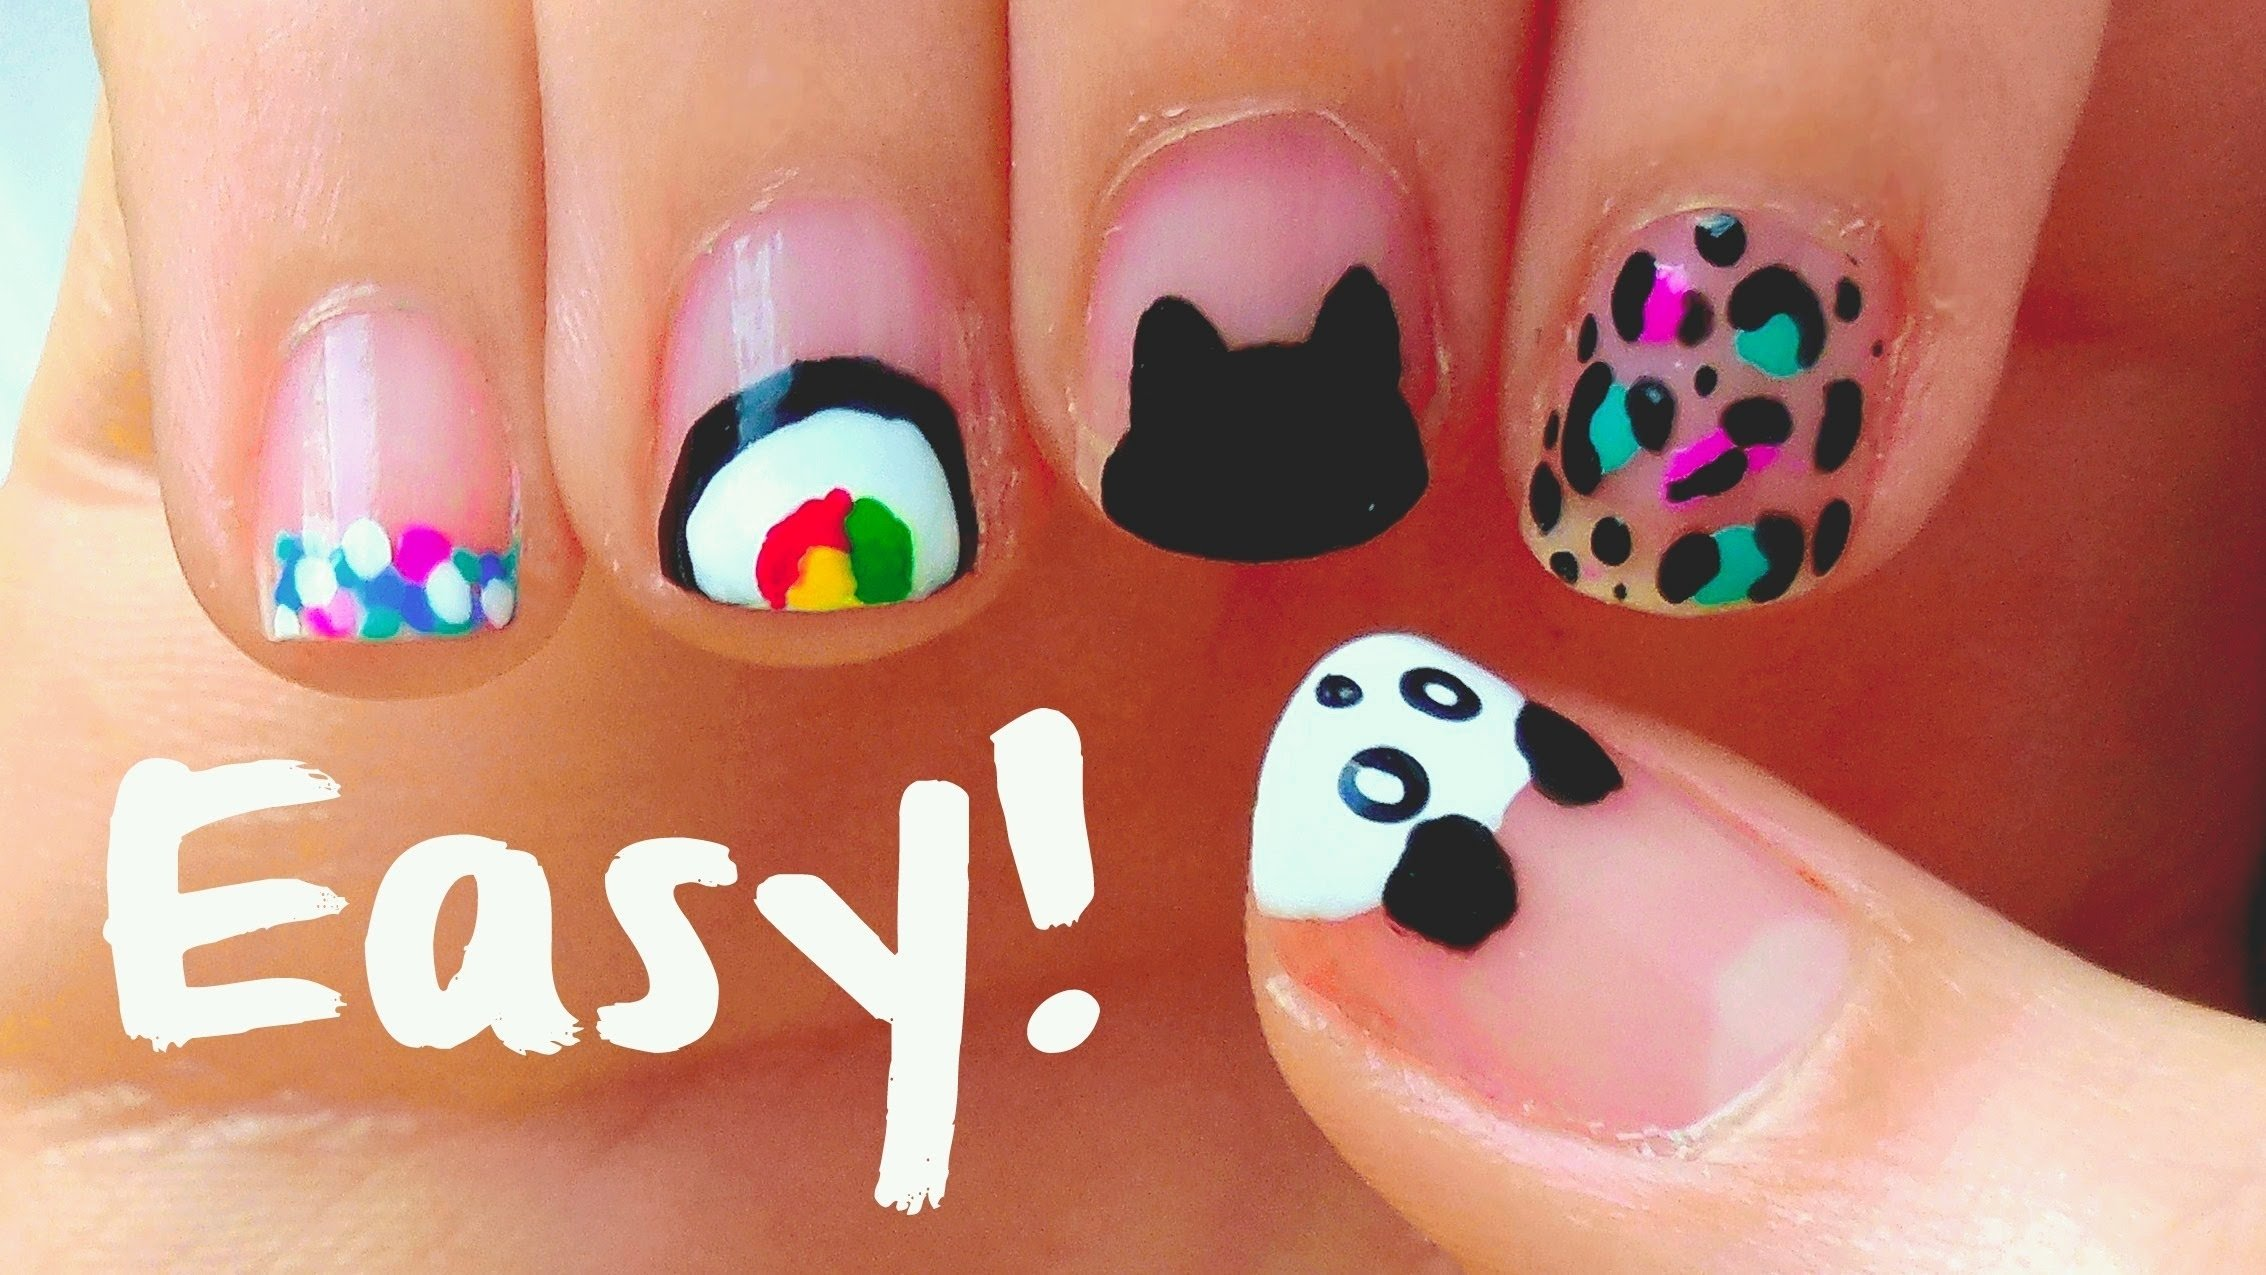 10 Attractive Easy Nail Ideas For Short Nails easy nail art designs for short nails for beginners diy tools 2021